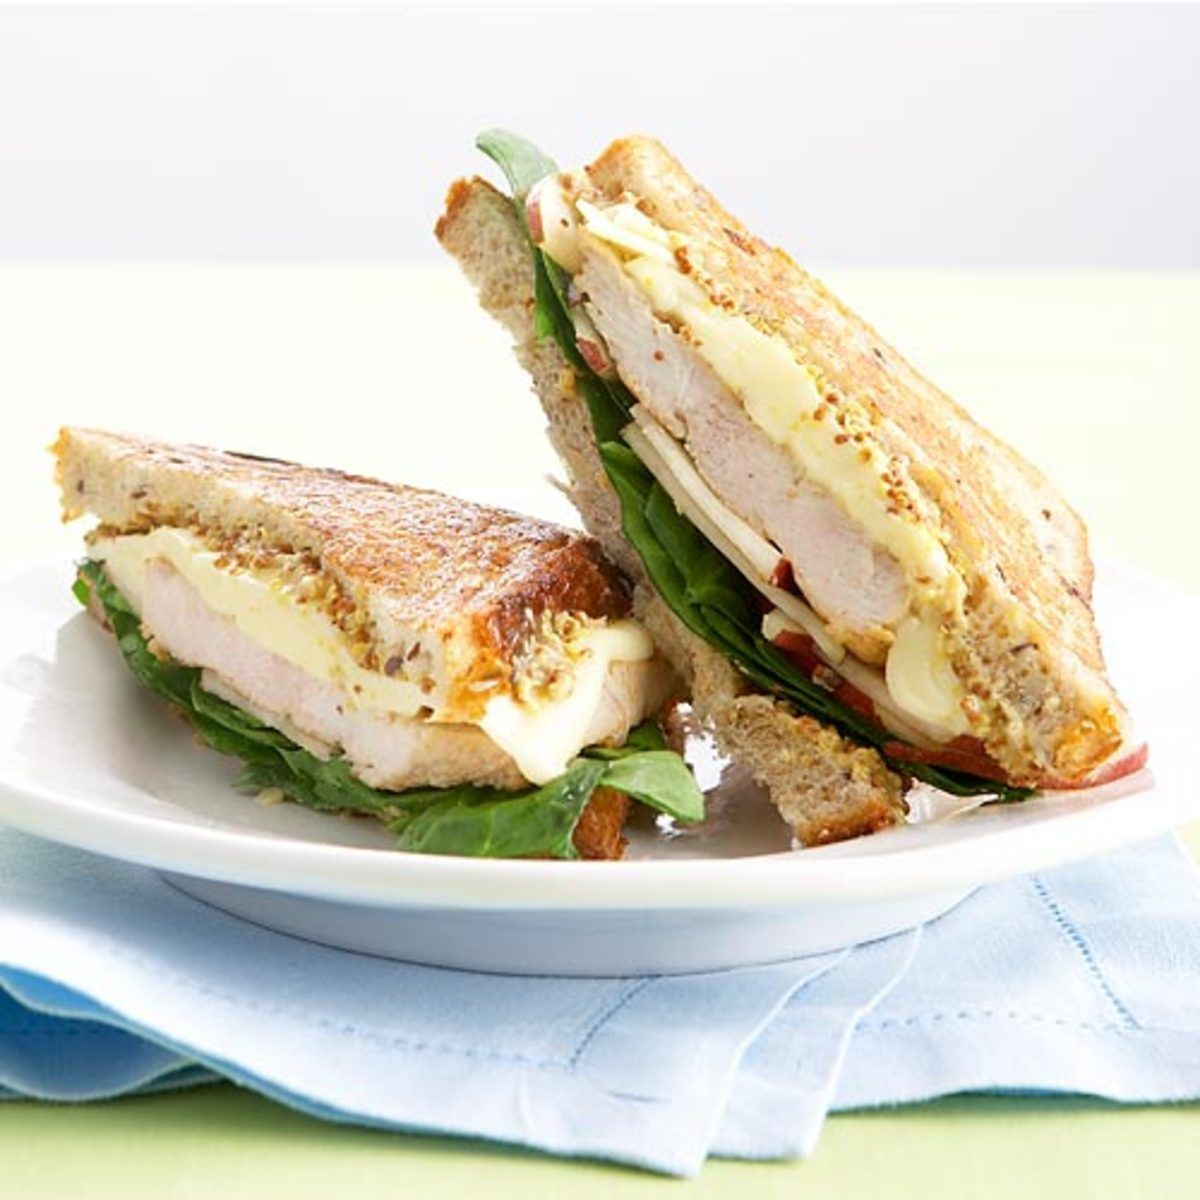 A Better Monte Cristo Sandwich #montecristosandwich Ditch the traditional butter-fried Monte Cristo for a healthier, tastier take. Sautéed turkey, pear, baby spinach and low-fat Swiss spare the fat but not the flavor. #montecristosandwich